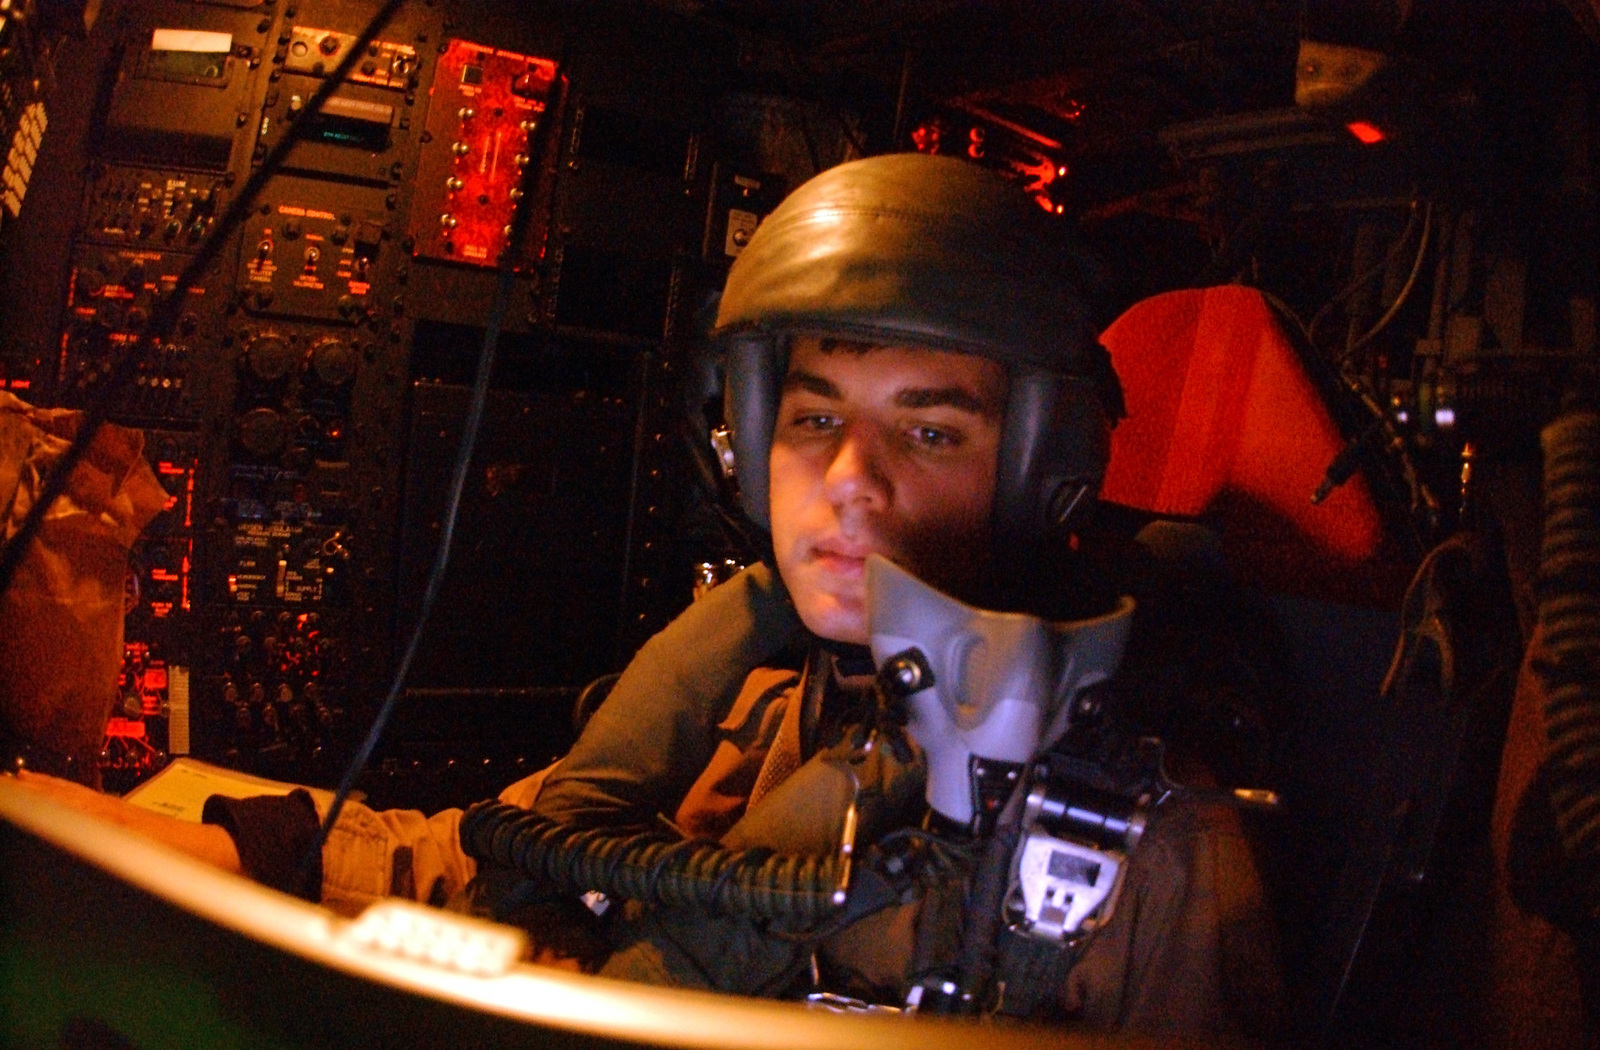 Over Iraqi skies, US Air Force (USAF) Navigator, Captain (CAPT) Edward Gussman, plots a post bombing egress for the 40th Expeditionary Bomb Squadrons (EBS) formation of B-52 Stratofortress Bombers, as they move towards a target, in support of Operation IRAQI FREEDOM